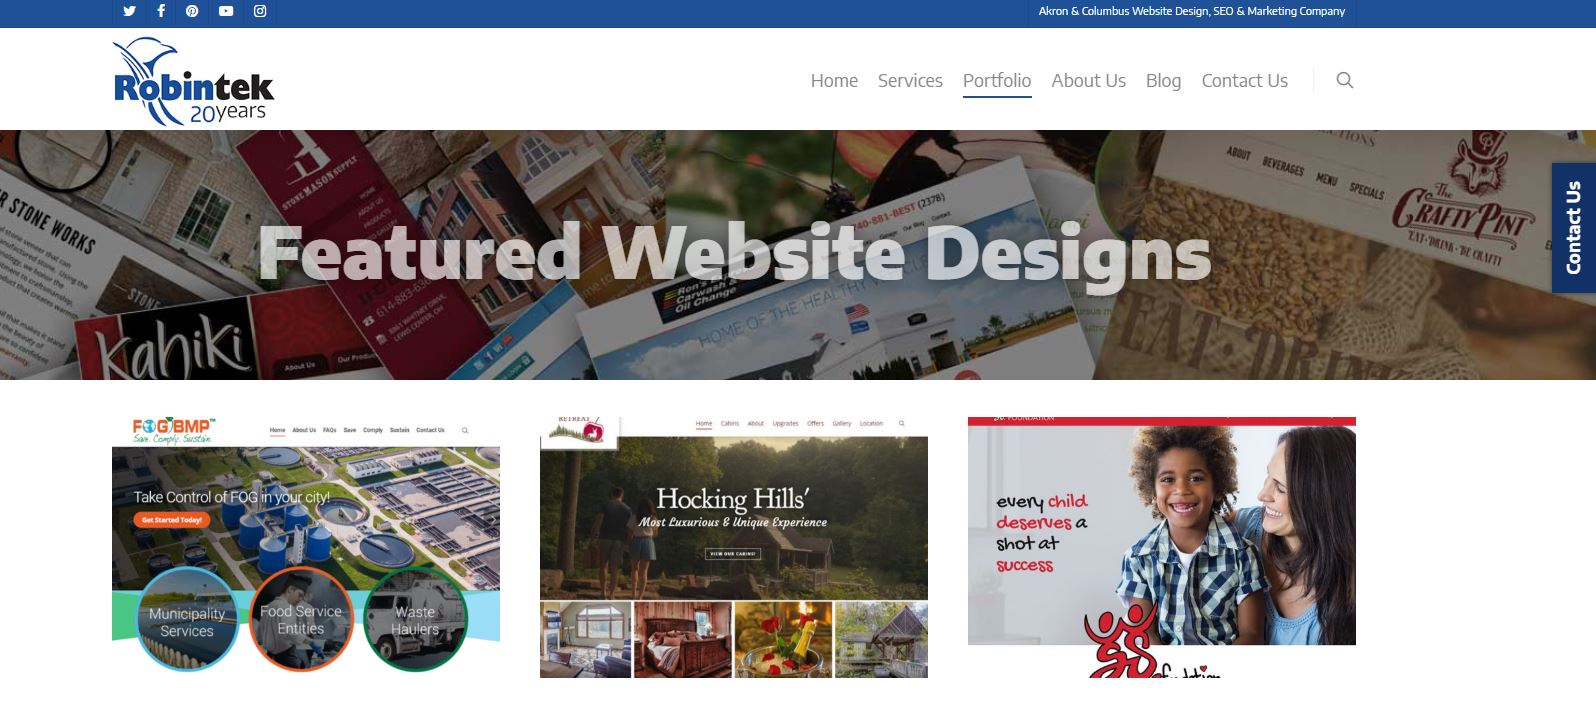 image of featured websites